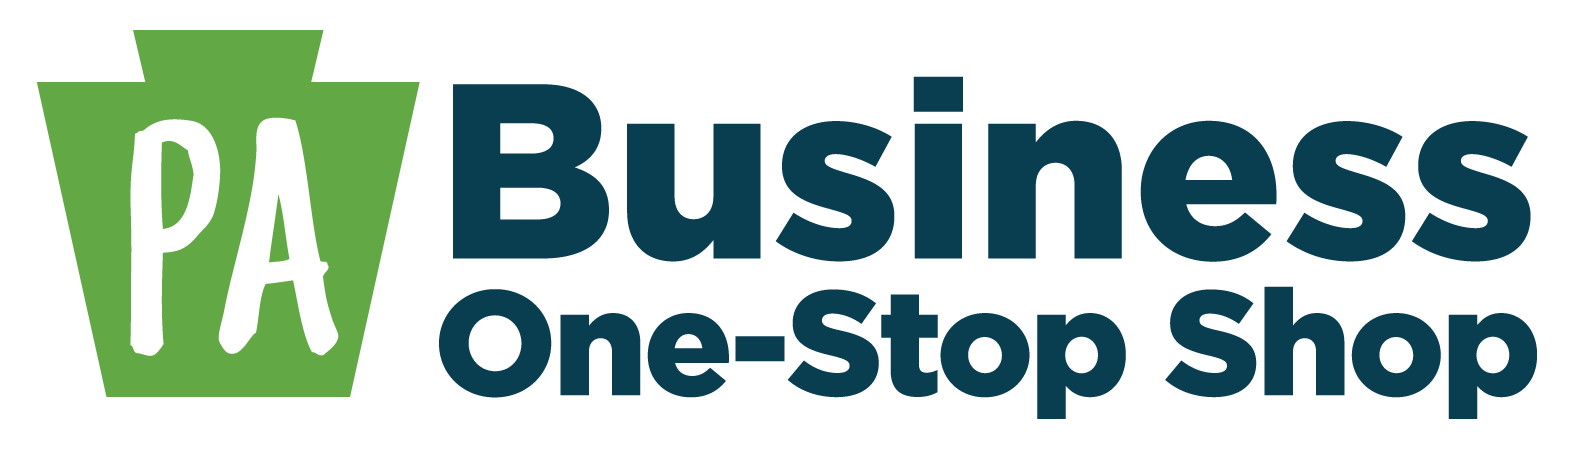 PA Business One Stop Logo